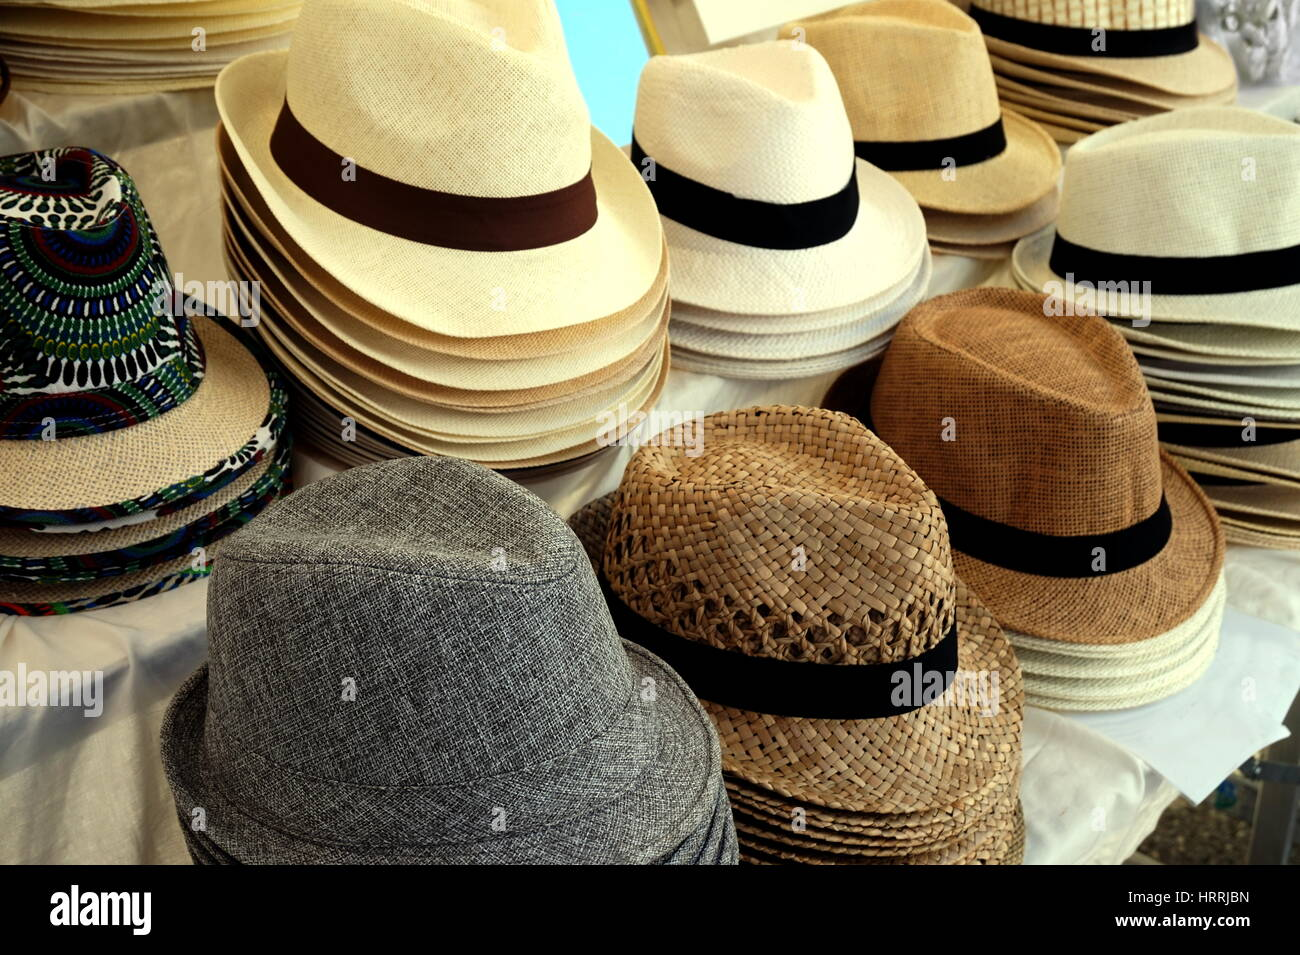 56e8b1d252346e Straw fedora hats for men in varied colors and designs on a market stall -  Stock